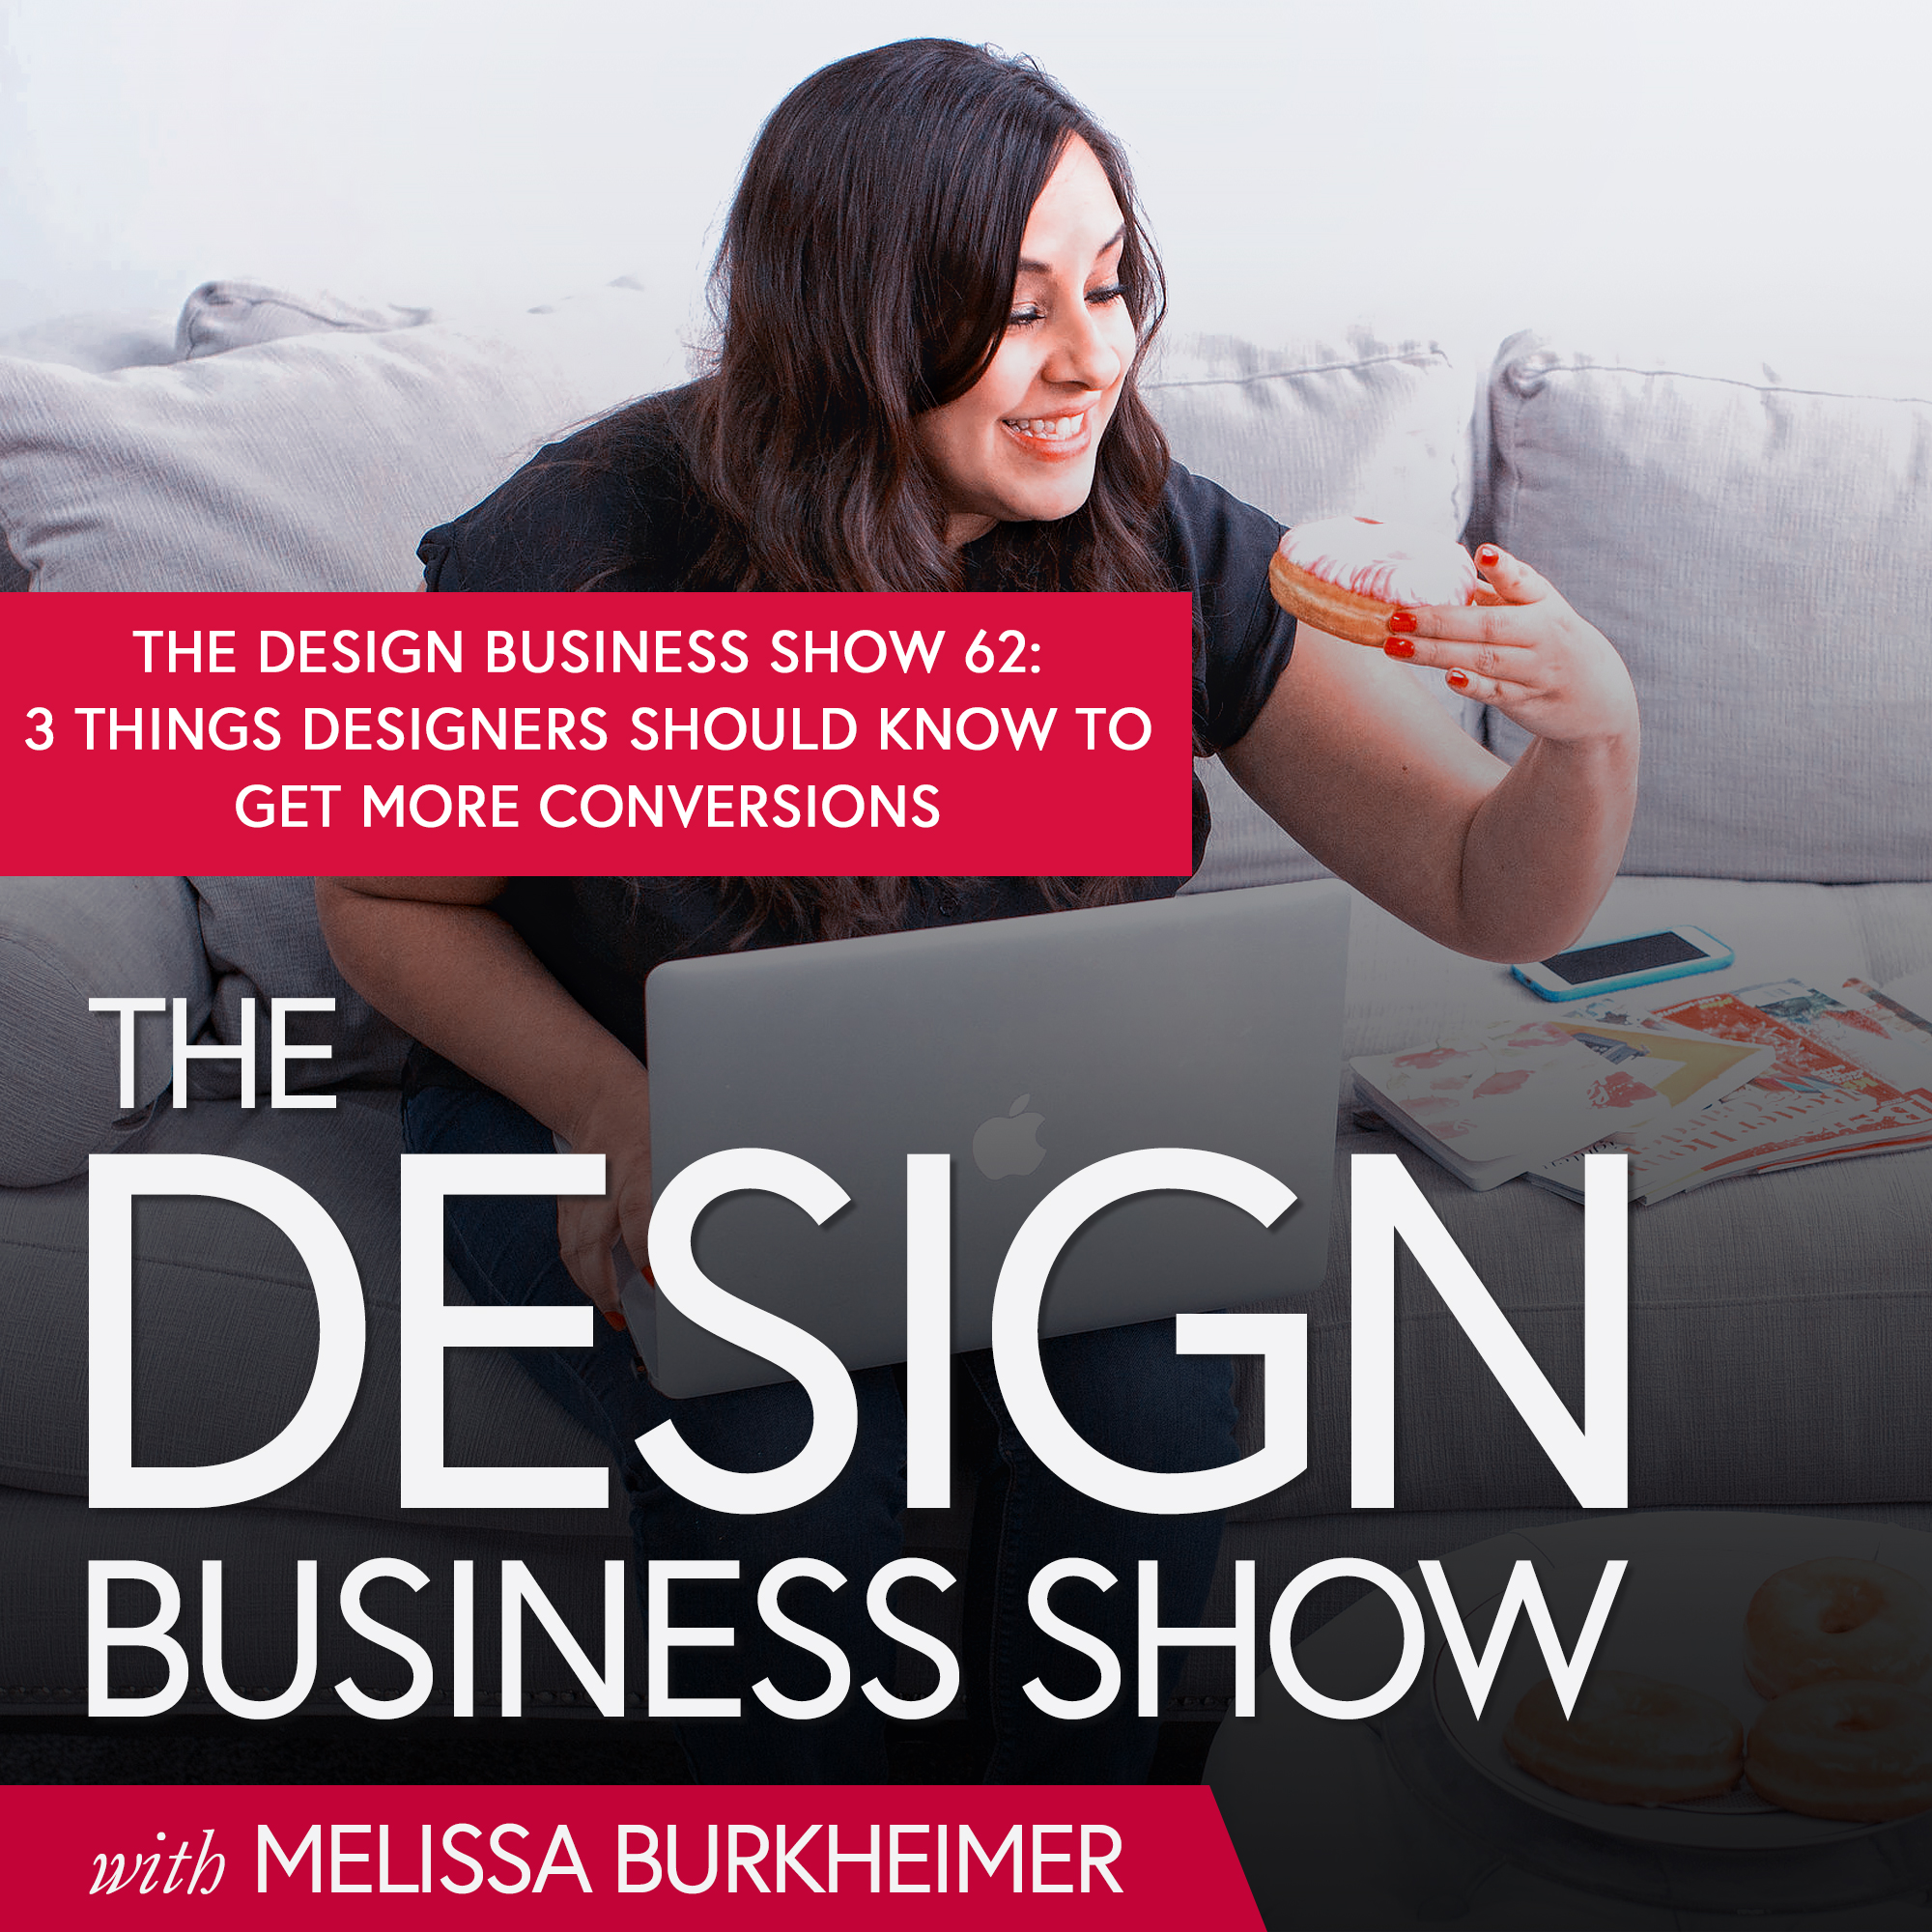 Check out episode 62 of The Design Business Show to understand what conversion design is and how you can use it to help your clients and grow your business.